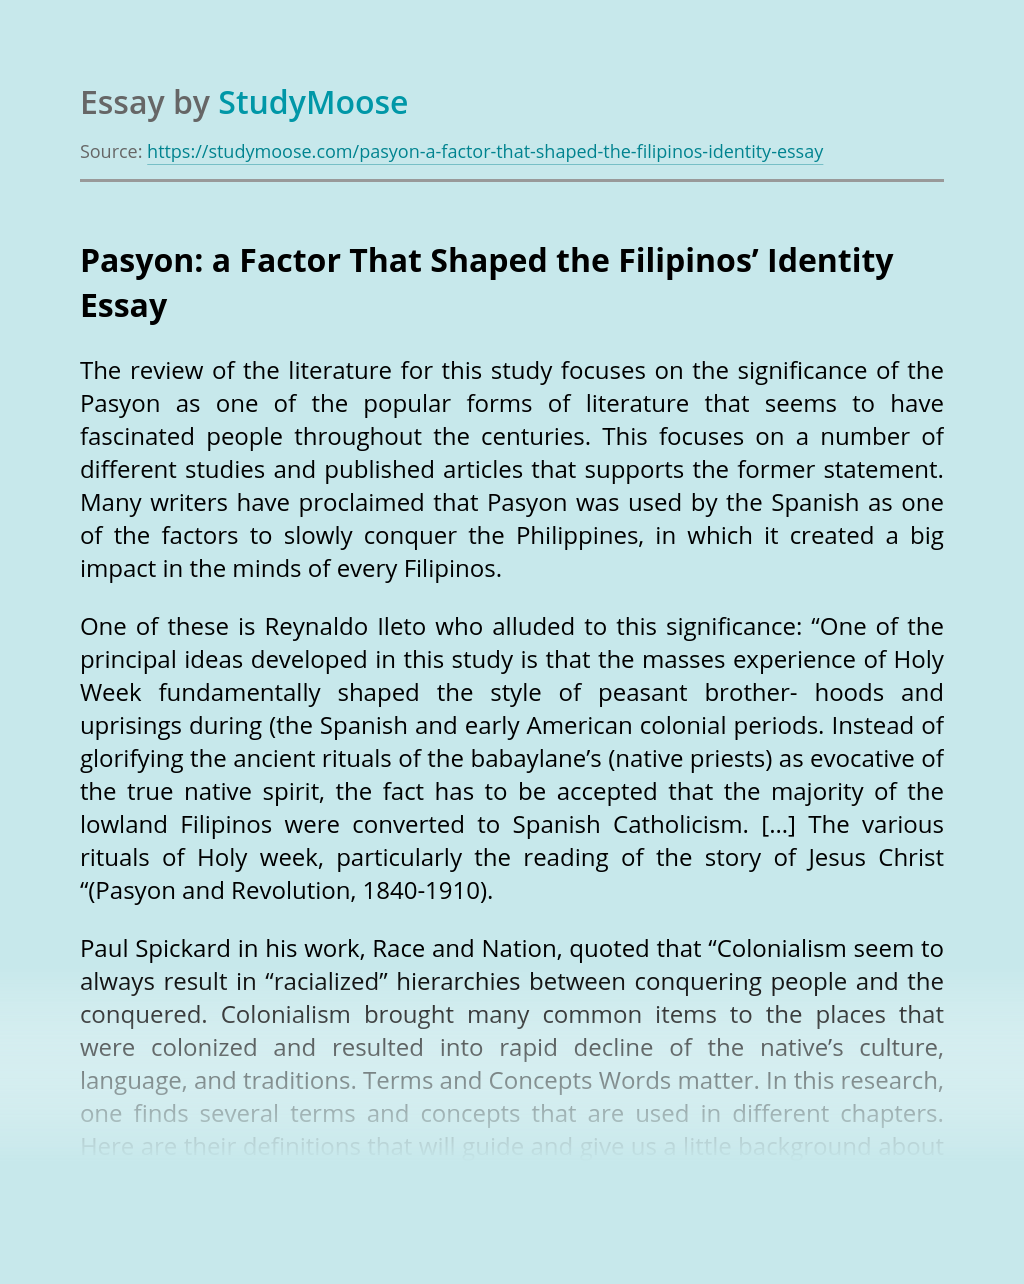 Pasyon: a Factor That Shaped the Filipinos' Identity